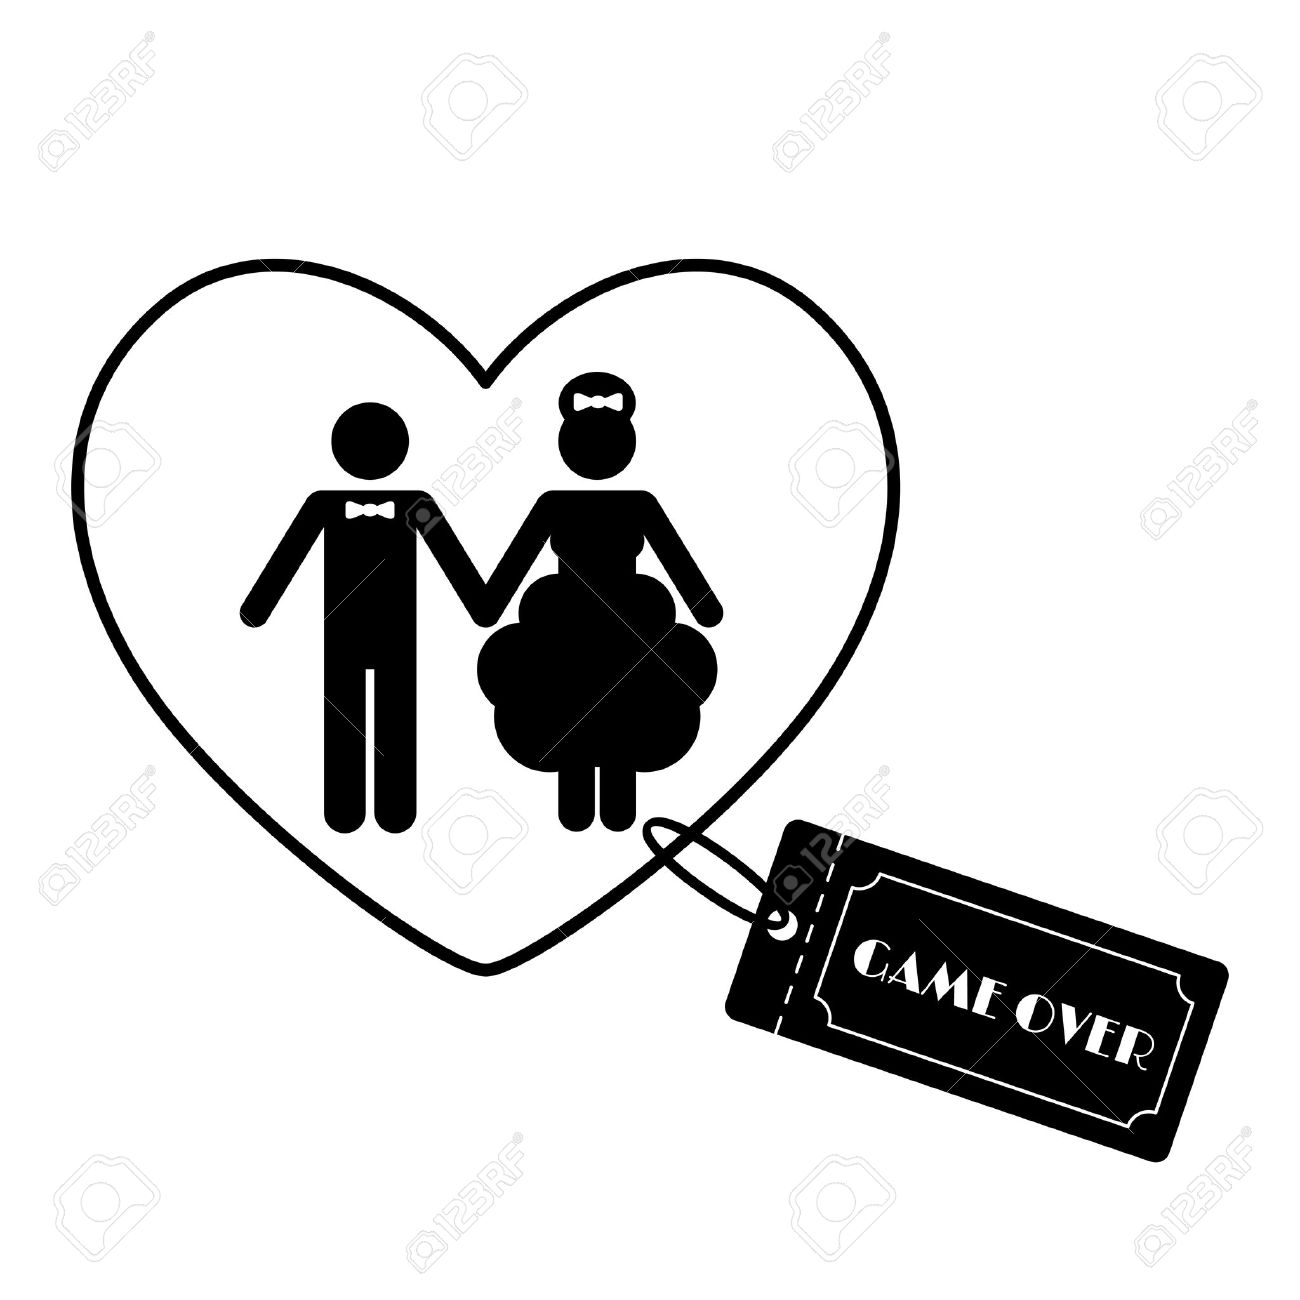 cartoon funny wedding symbols game over vector illustration rh 123rf com wedding vector clip art wedding vector clip art